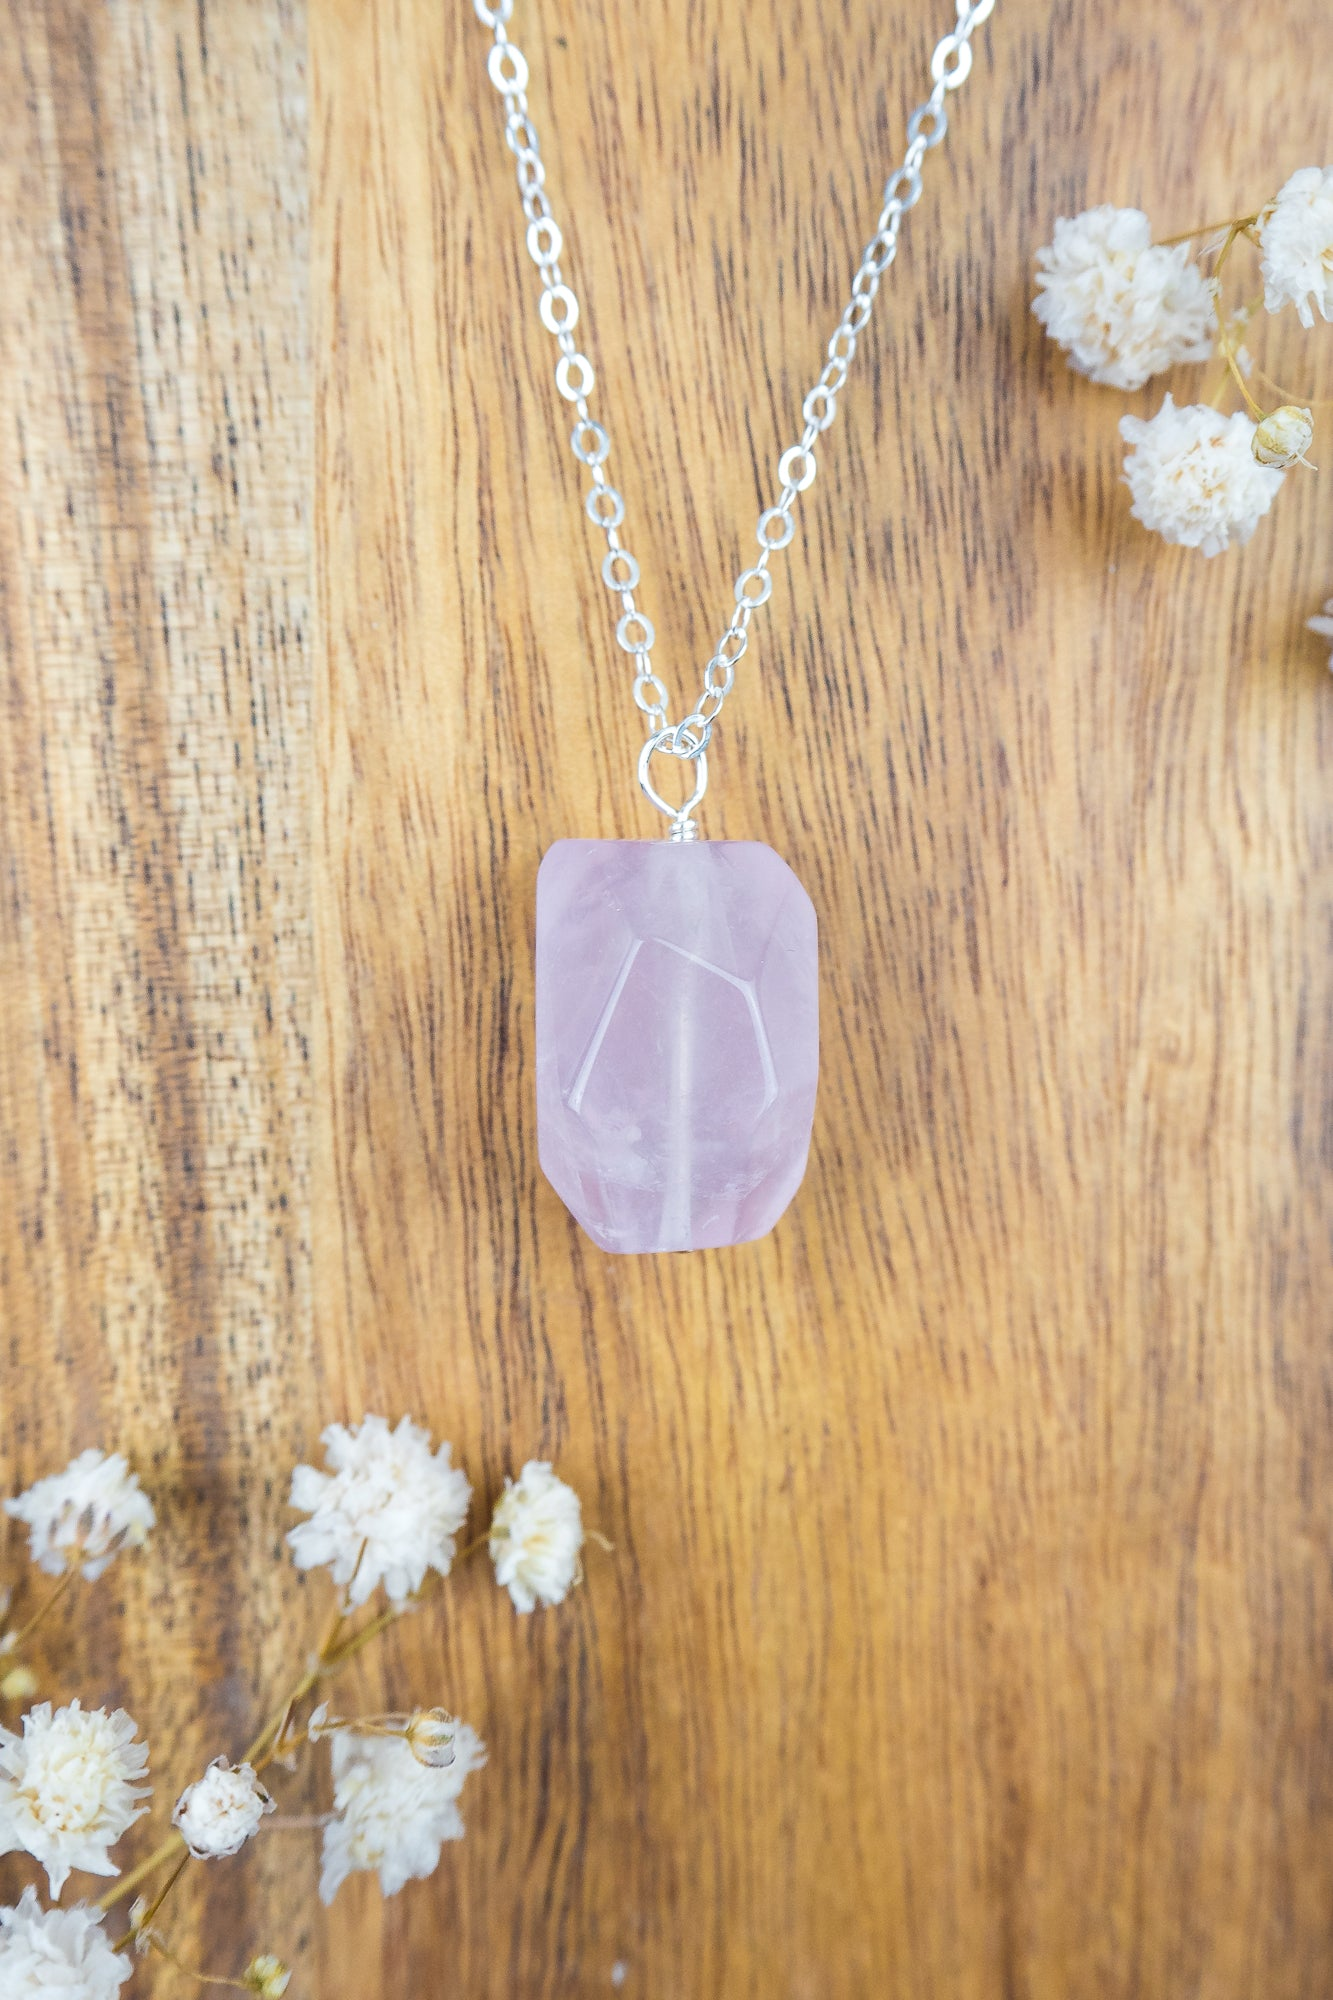 Rose Quartz Nugget Pendant Necklace - Luna Tide